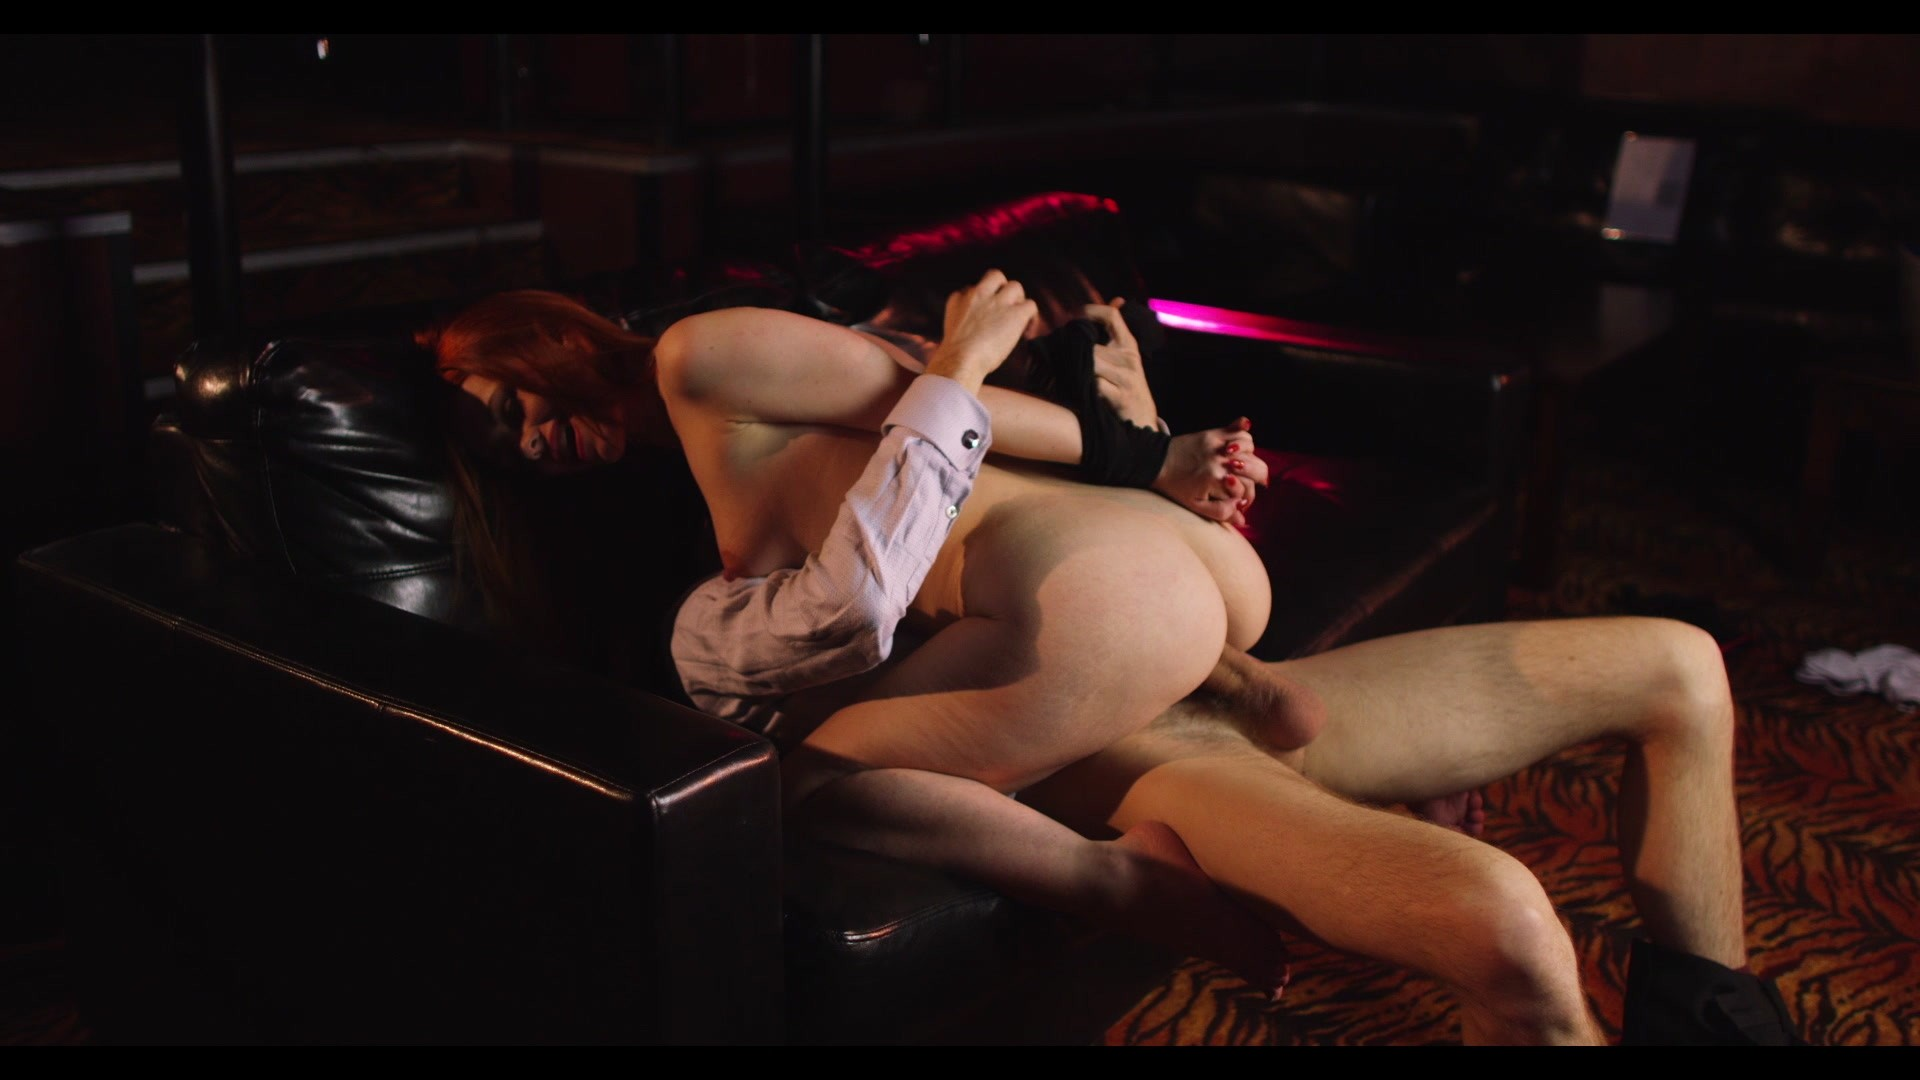 Scene with Ella Hughes - image 15 out of 20